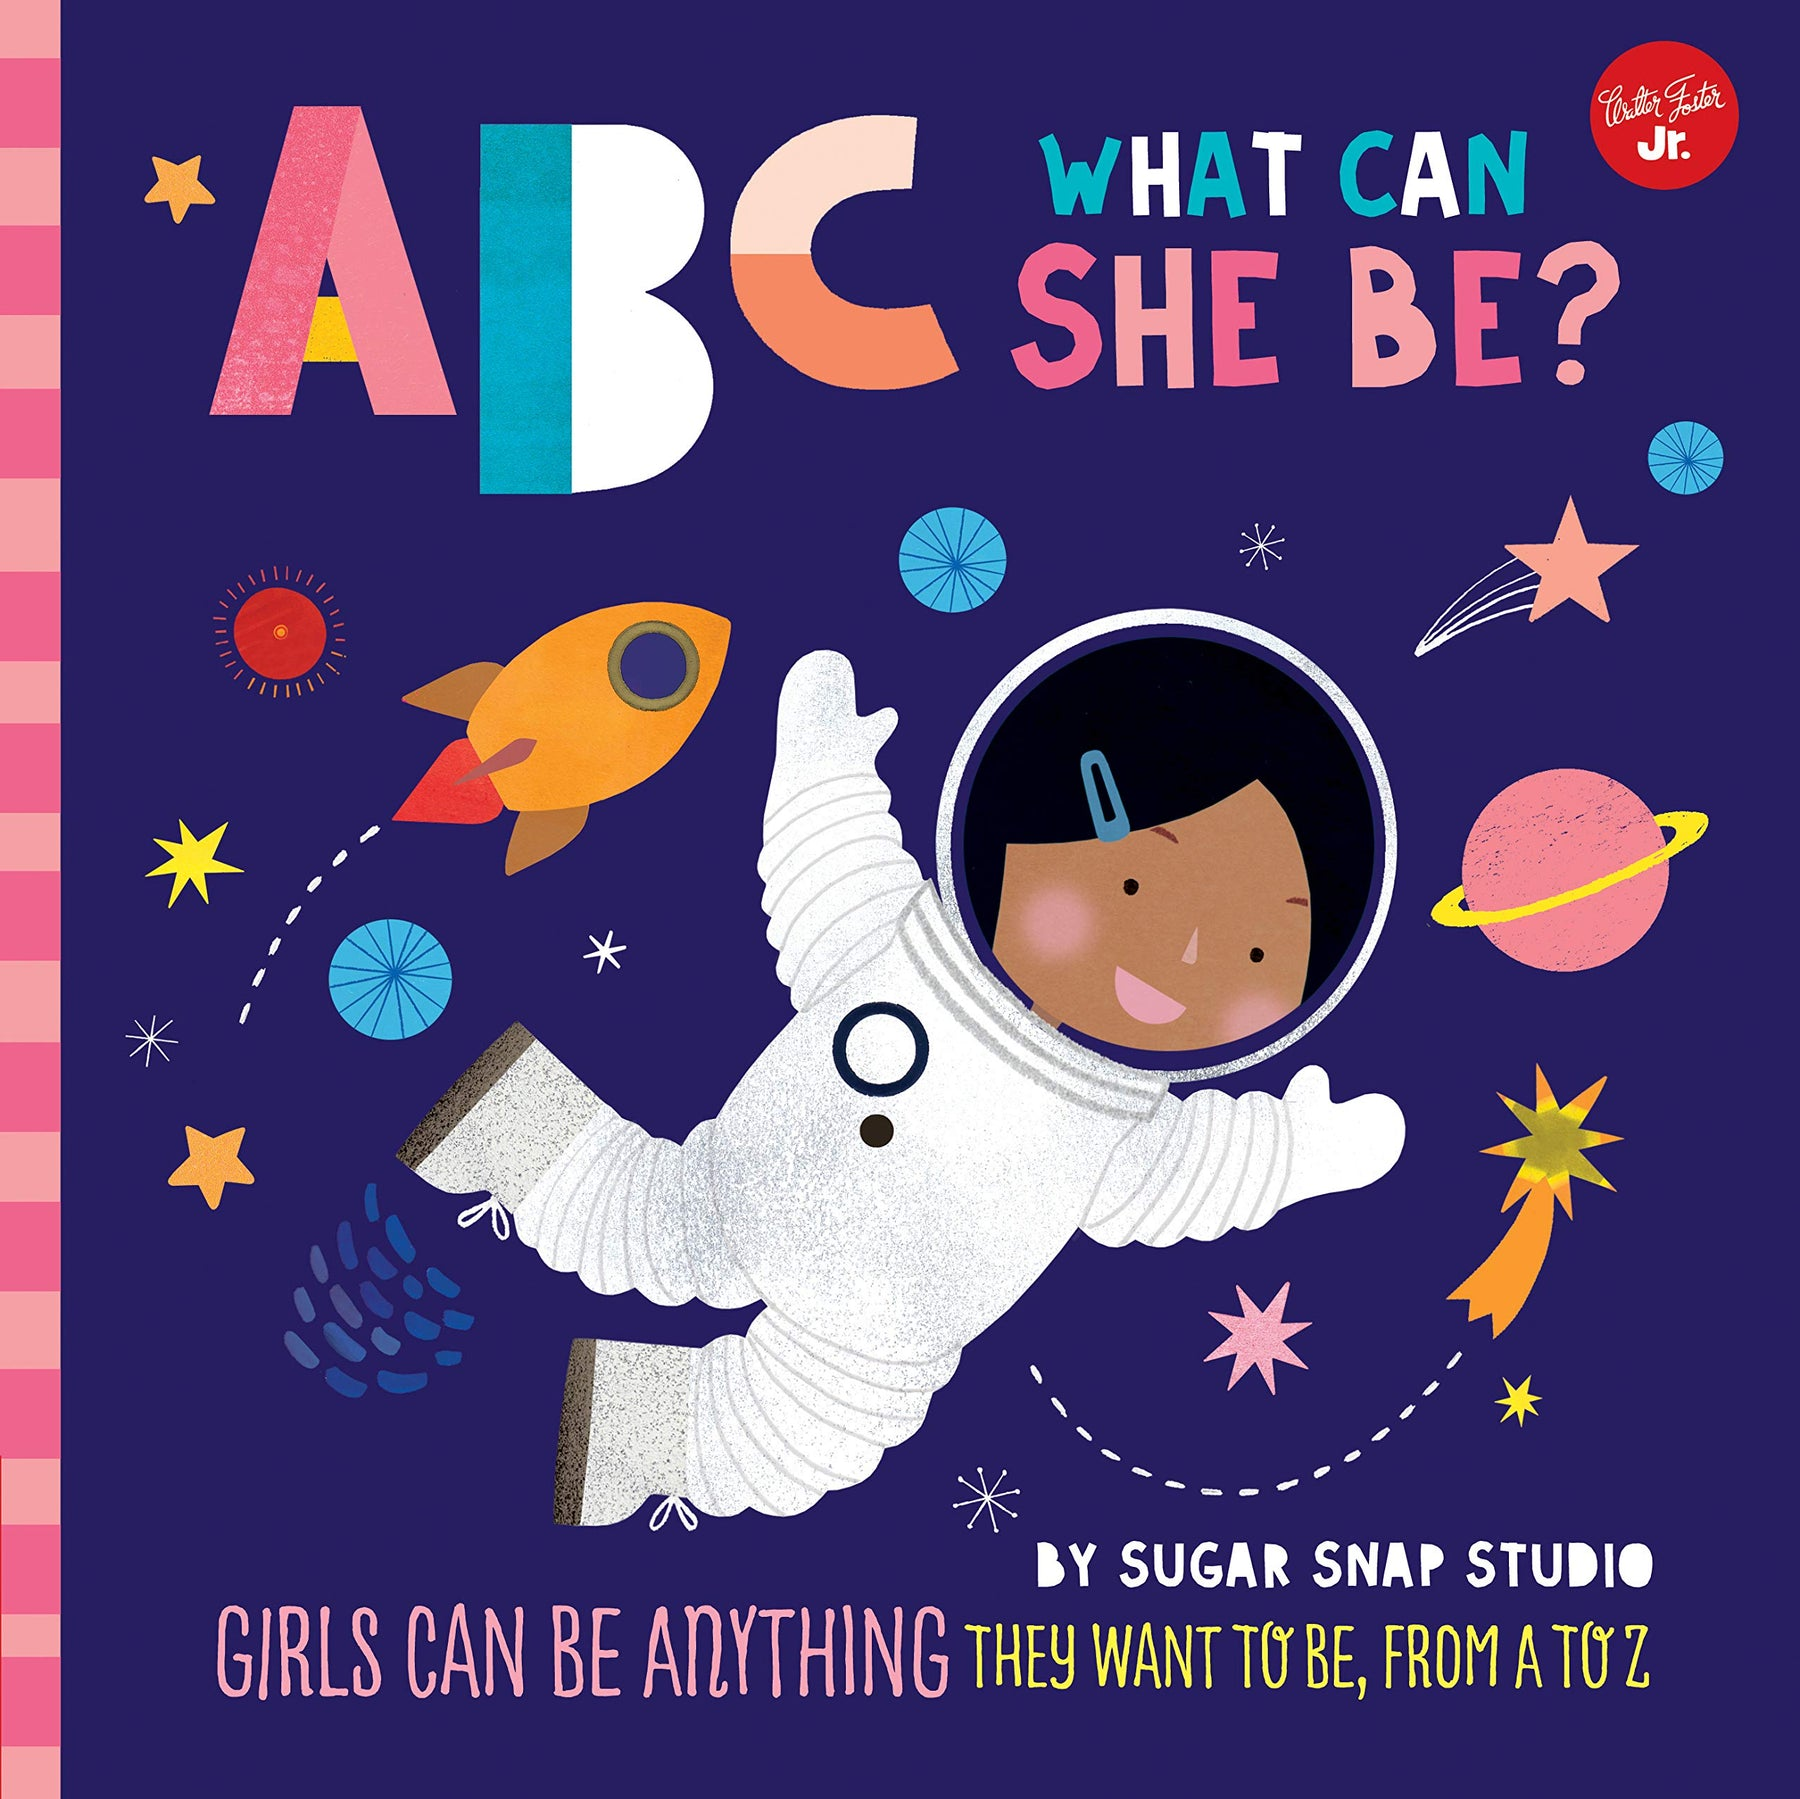 ABC What Can She Be? Board Book - JKA Toys